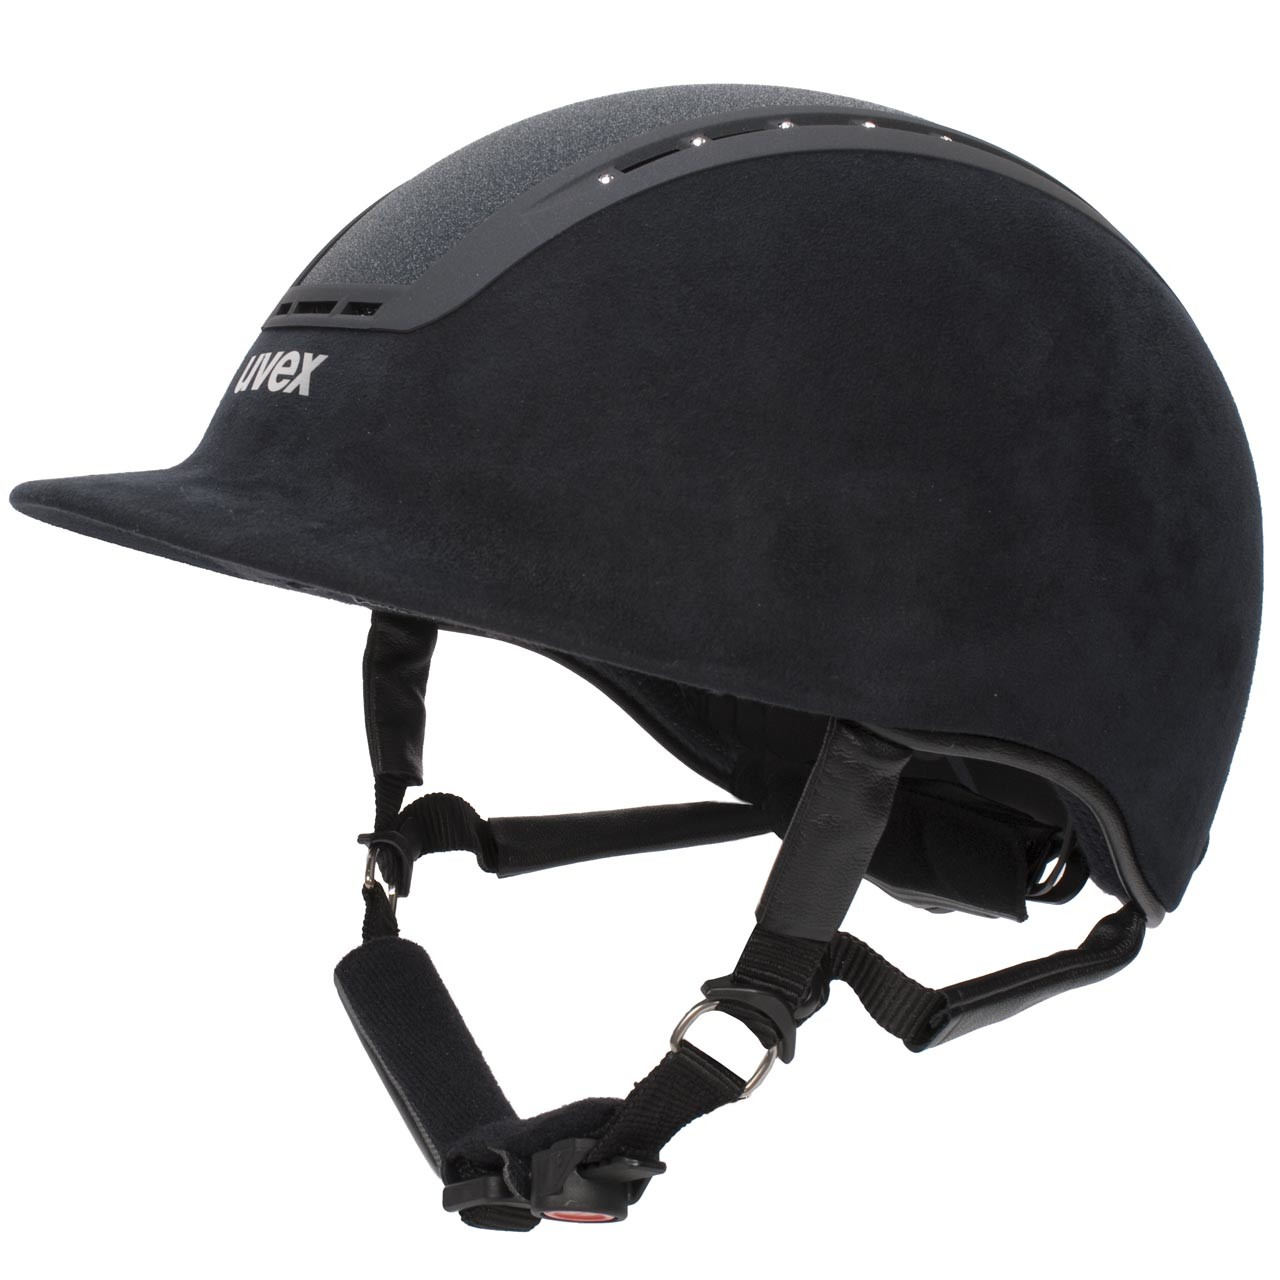 Uvex Suxxeed Glamour VG1 cap donkerblauw maat:s